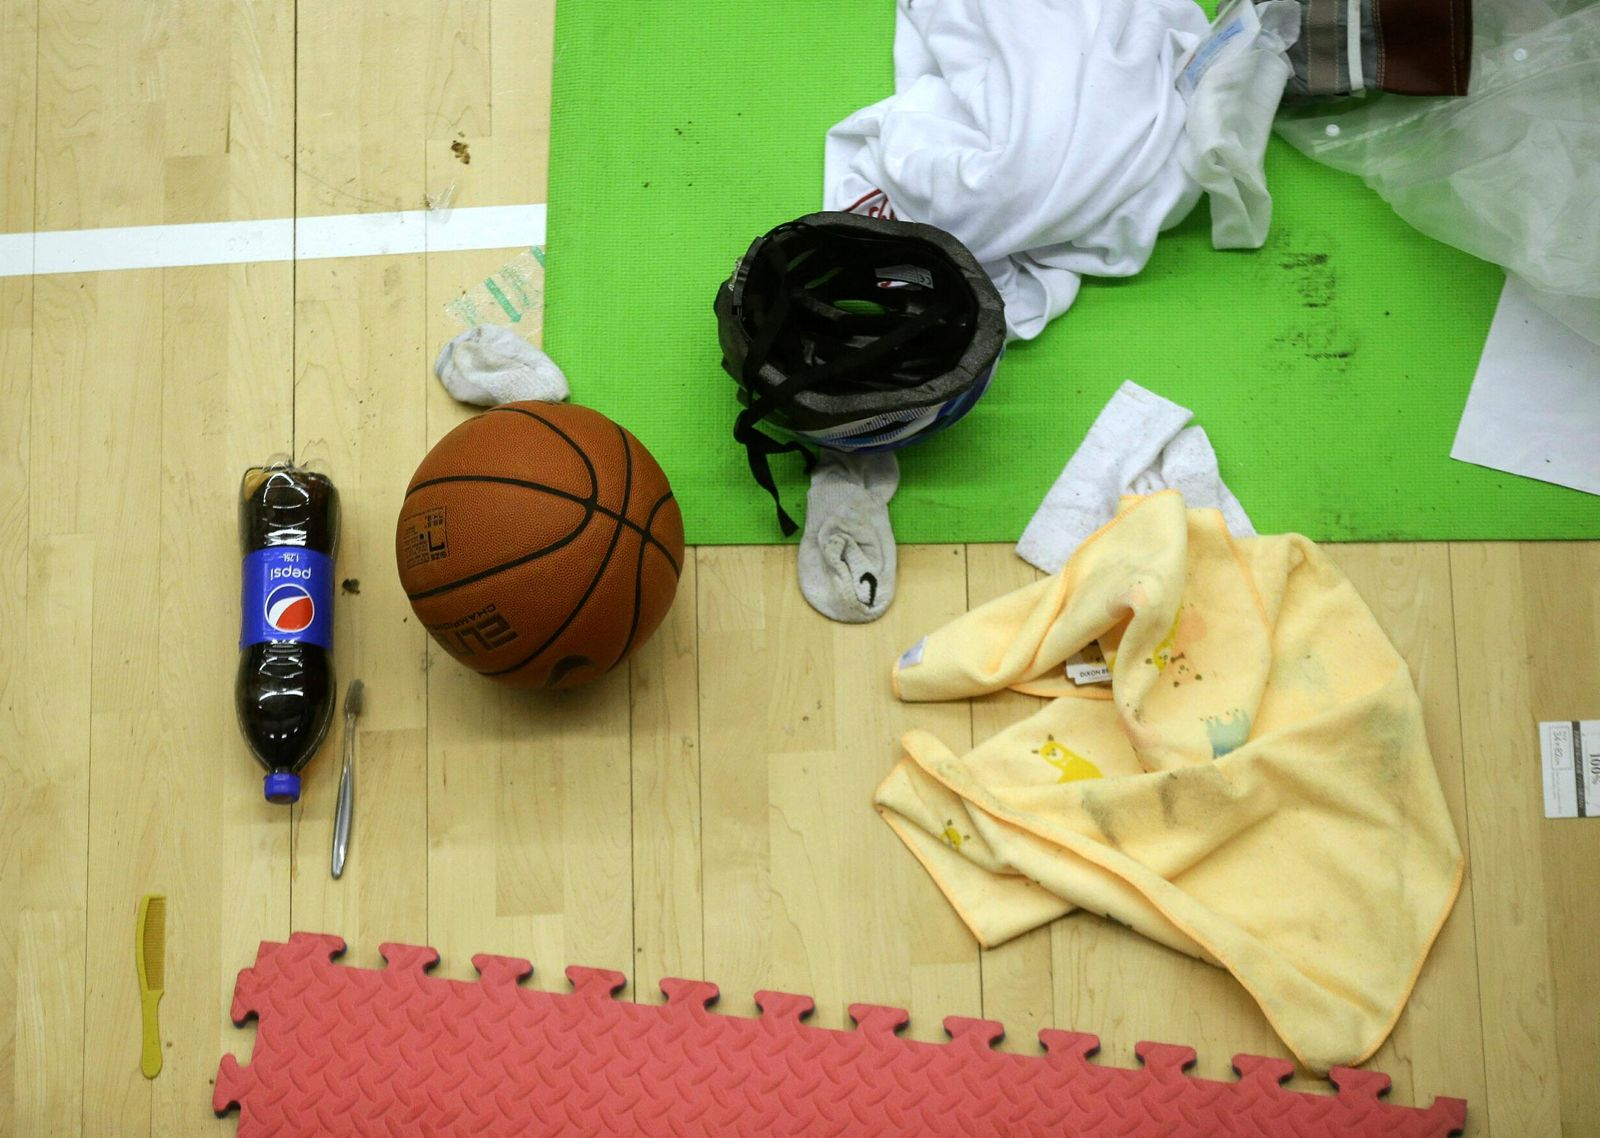 Clothes and a basketball belonging to protesters are left in the campus of the Polytechnic University in Hong Kong, Wednesday, Nov. 20, 2019. (AP Photo/Ahmad Ibrahim)